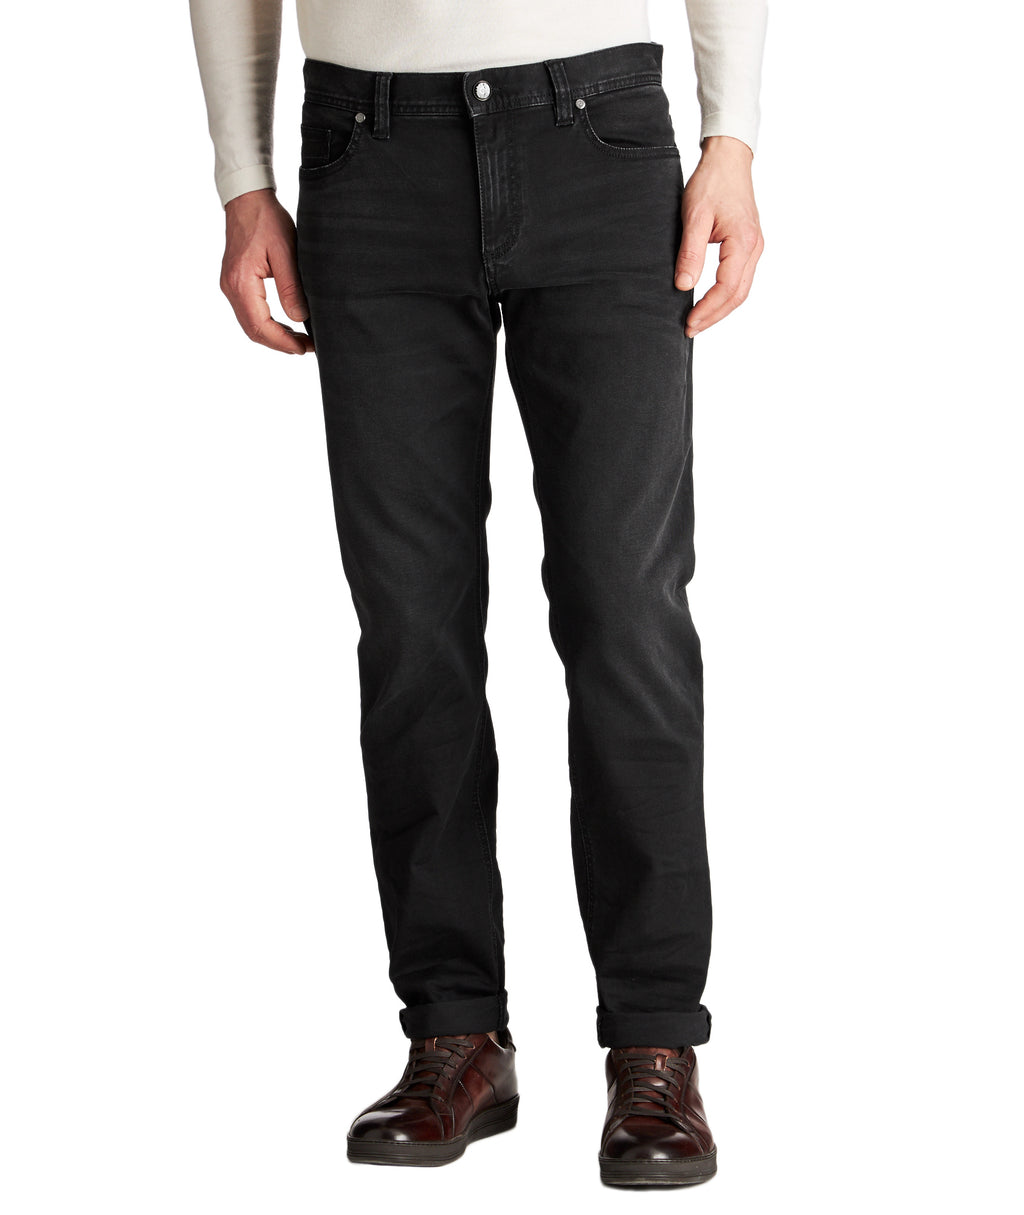 Alberto Jeans - Pipe Slim Fit Black